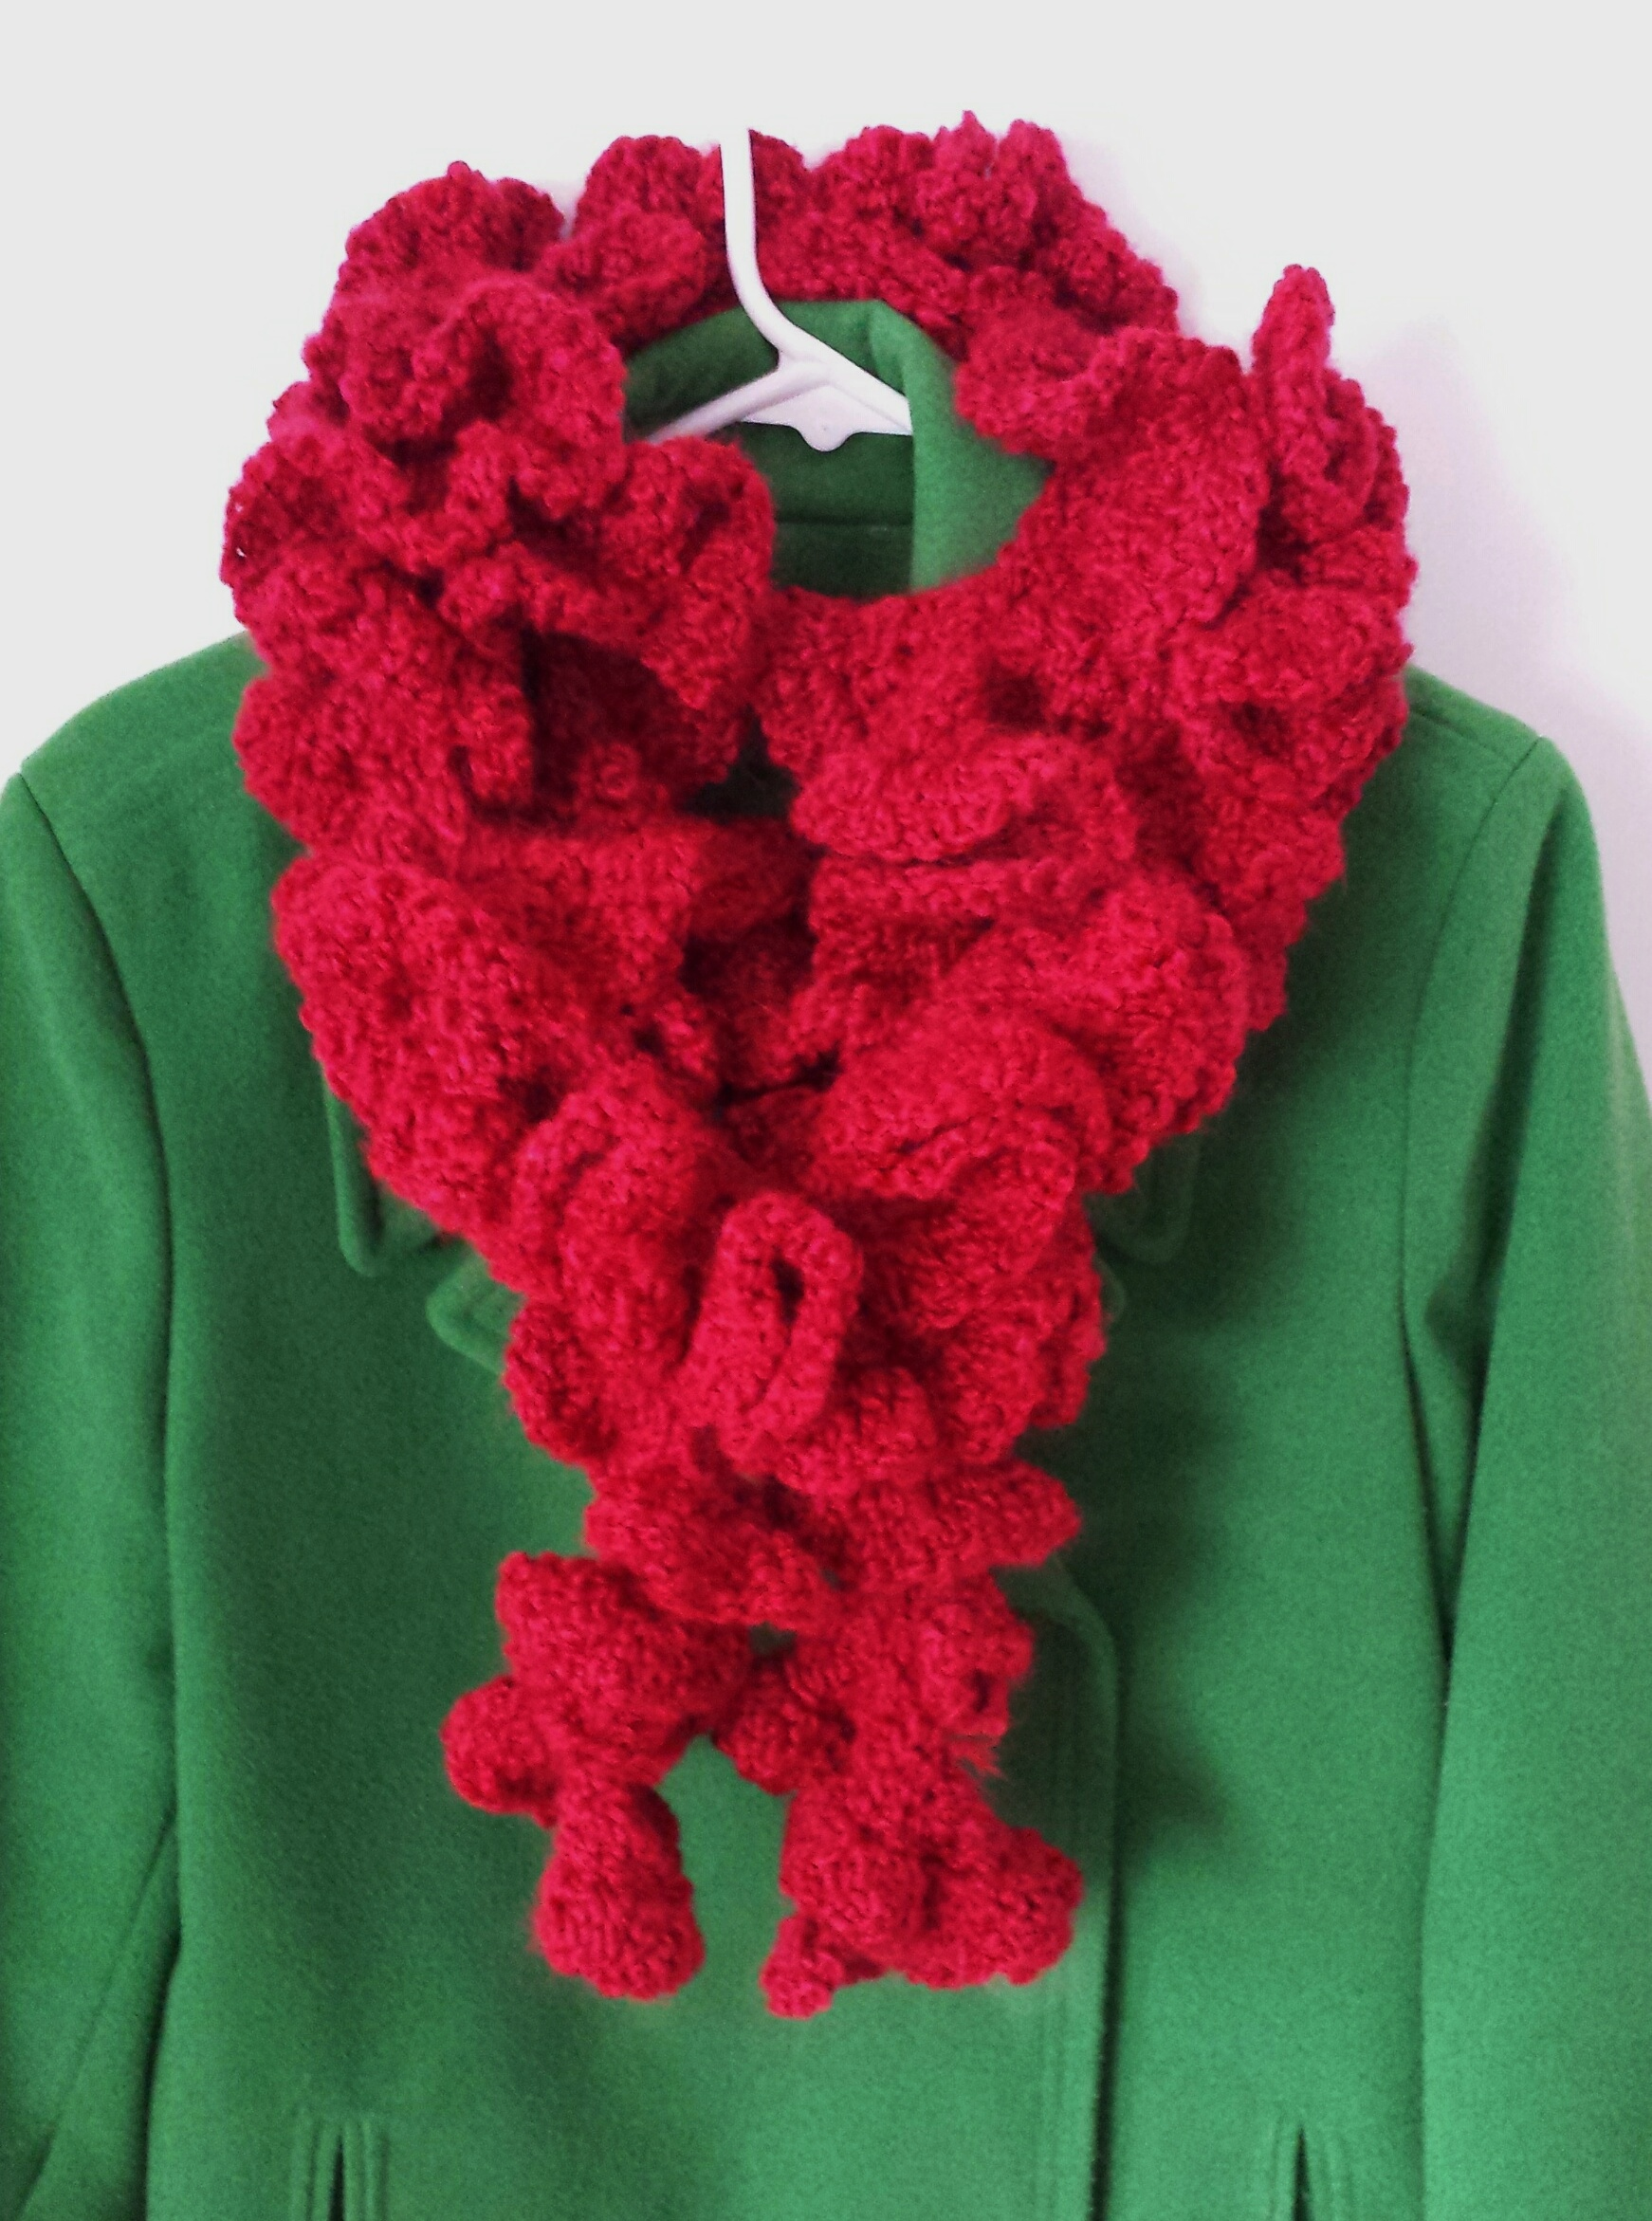 Crocheted Ruffle Scarf A Place For Learning